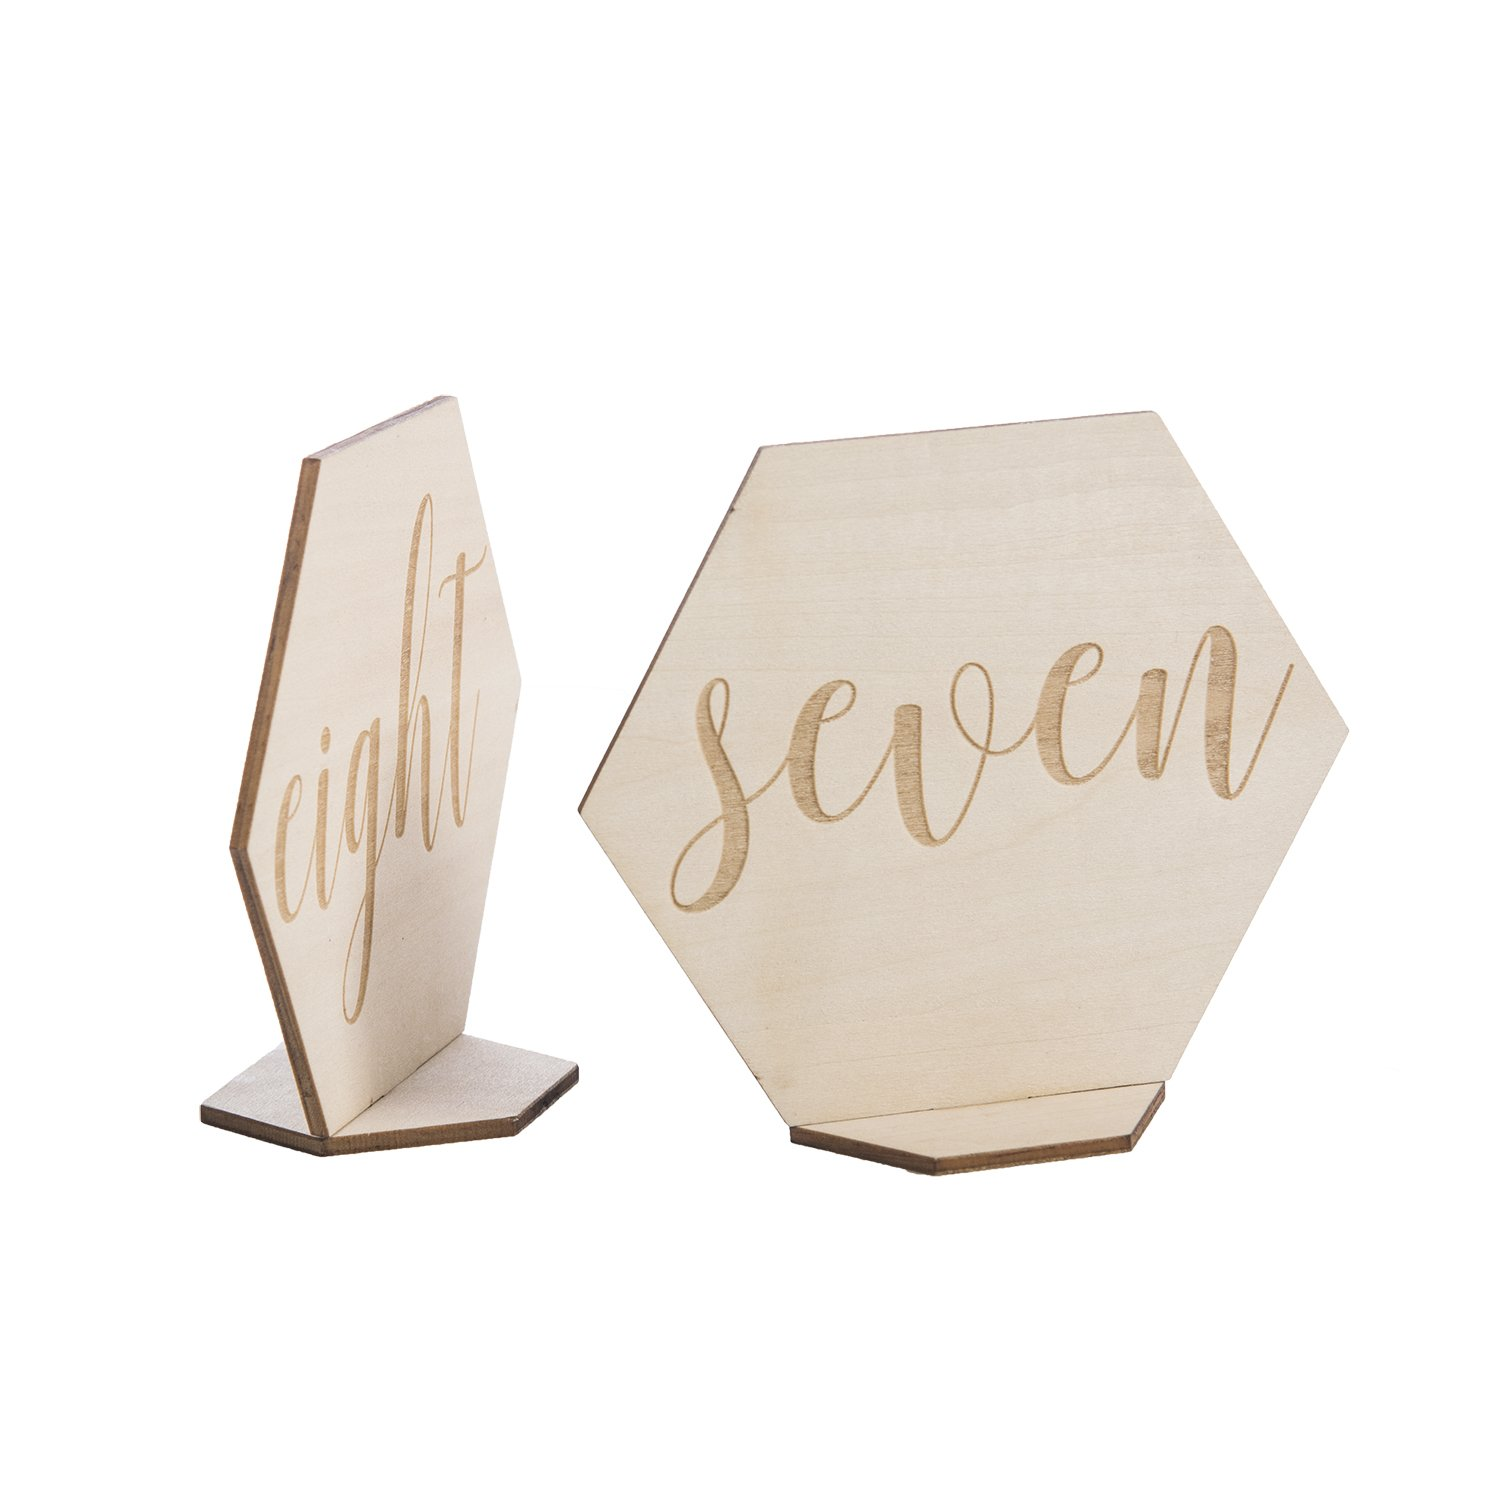 Ling's moment Vintage Elegant Hexagon Table Numbers White Double-Sided Standing Place Card Holders for Wedding Party Bridal Shower Table Decor …